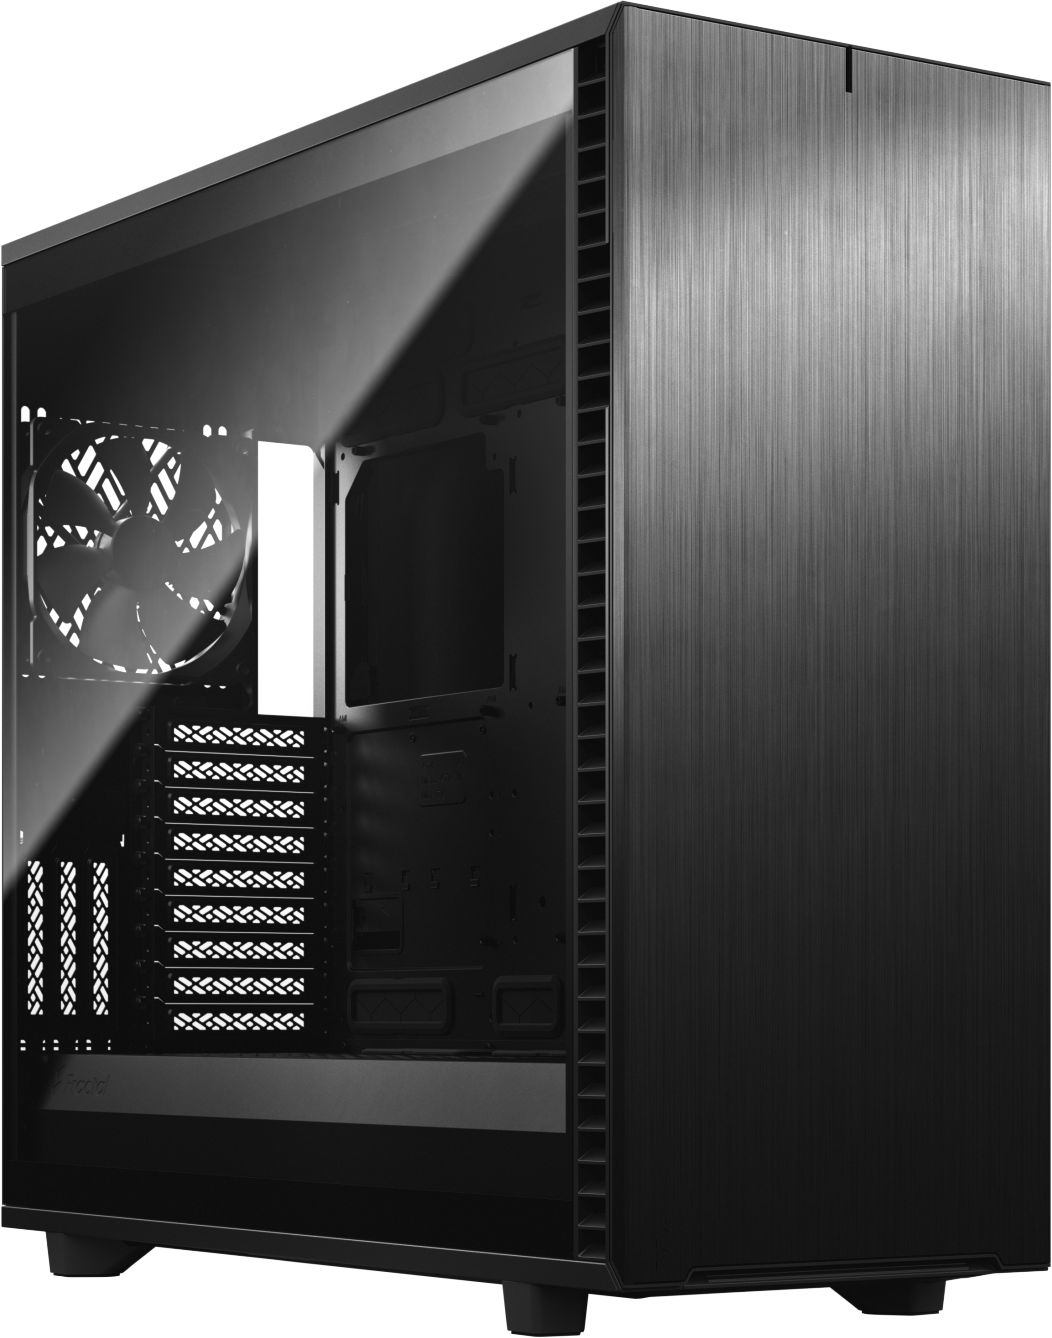 Fractal Design Define 7 Xl Full Tower Case At Mighty Ape Nz,Small House Simple Ceiling Design With Cement